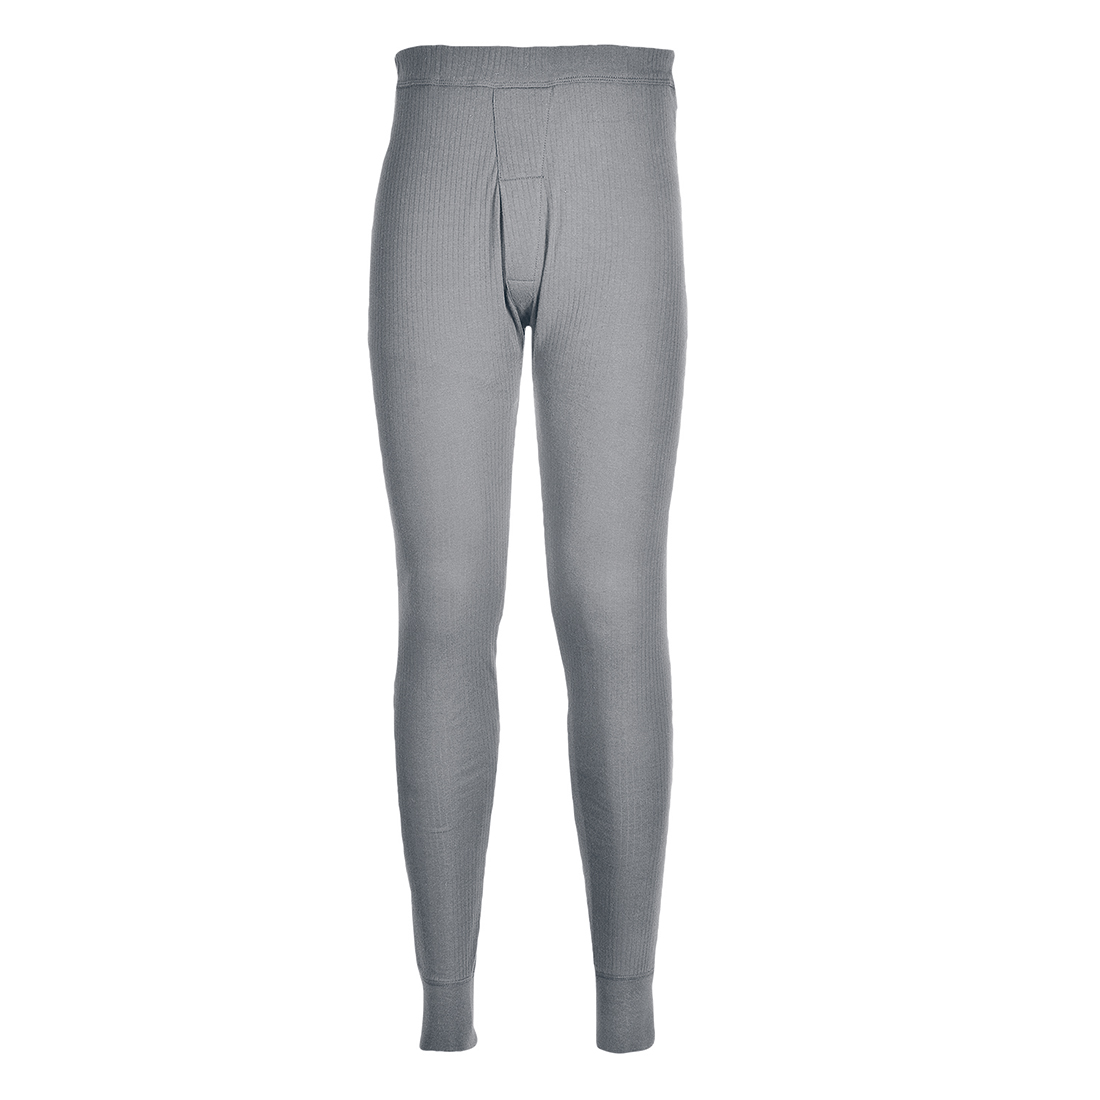 Thermal Trouser Grey XL